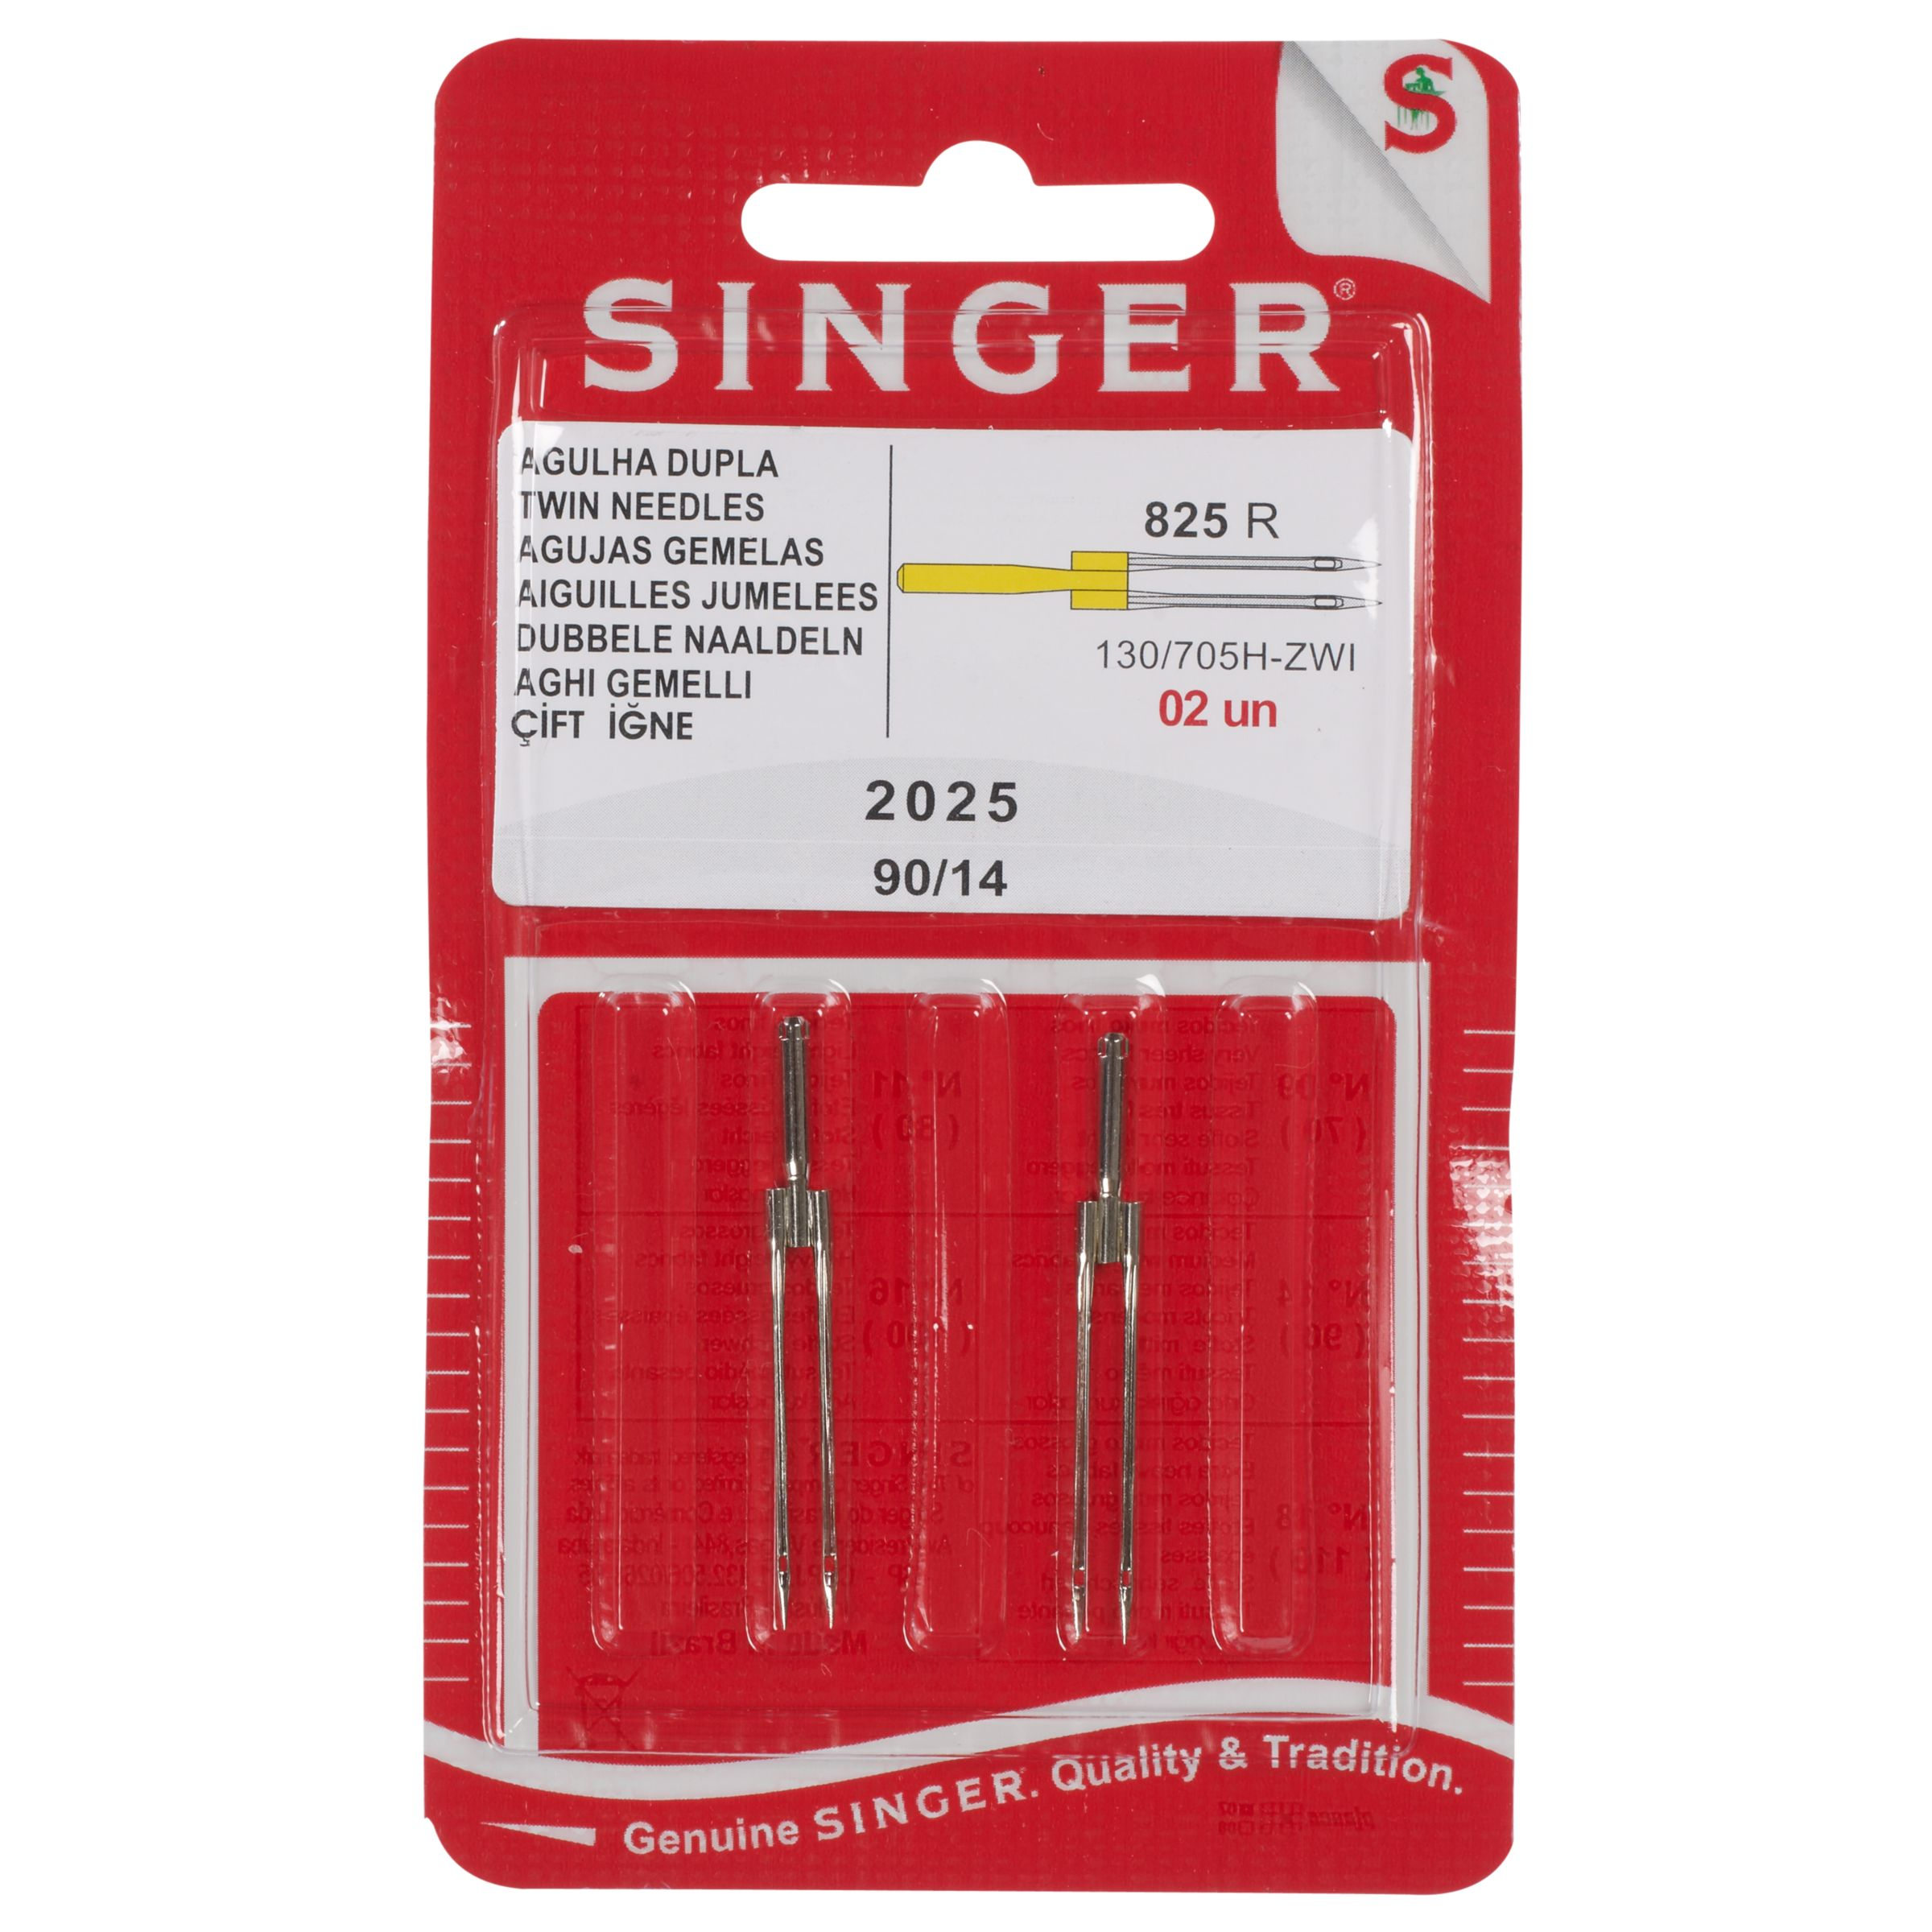 Singer Singer Sewing Machine Assorted Twin Needles, 2025